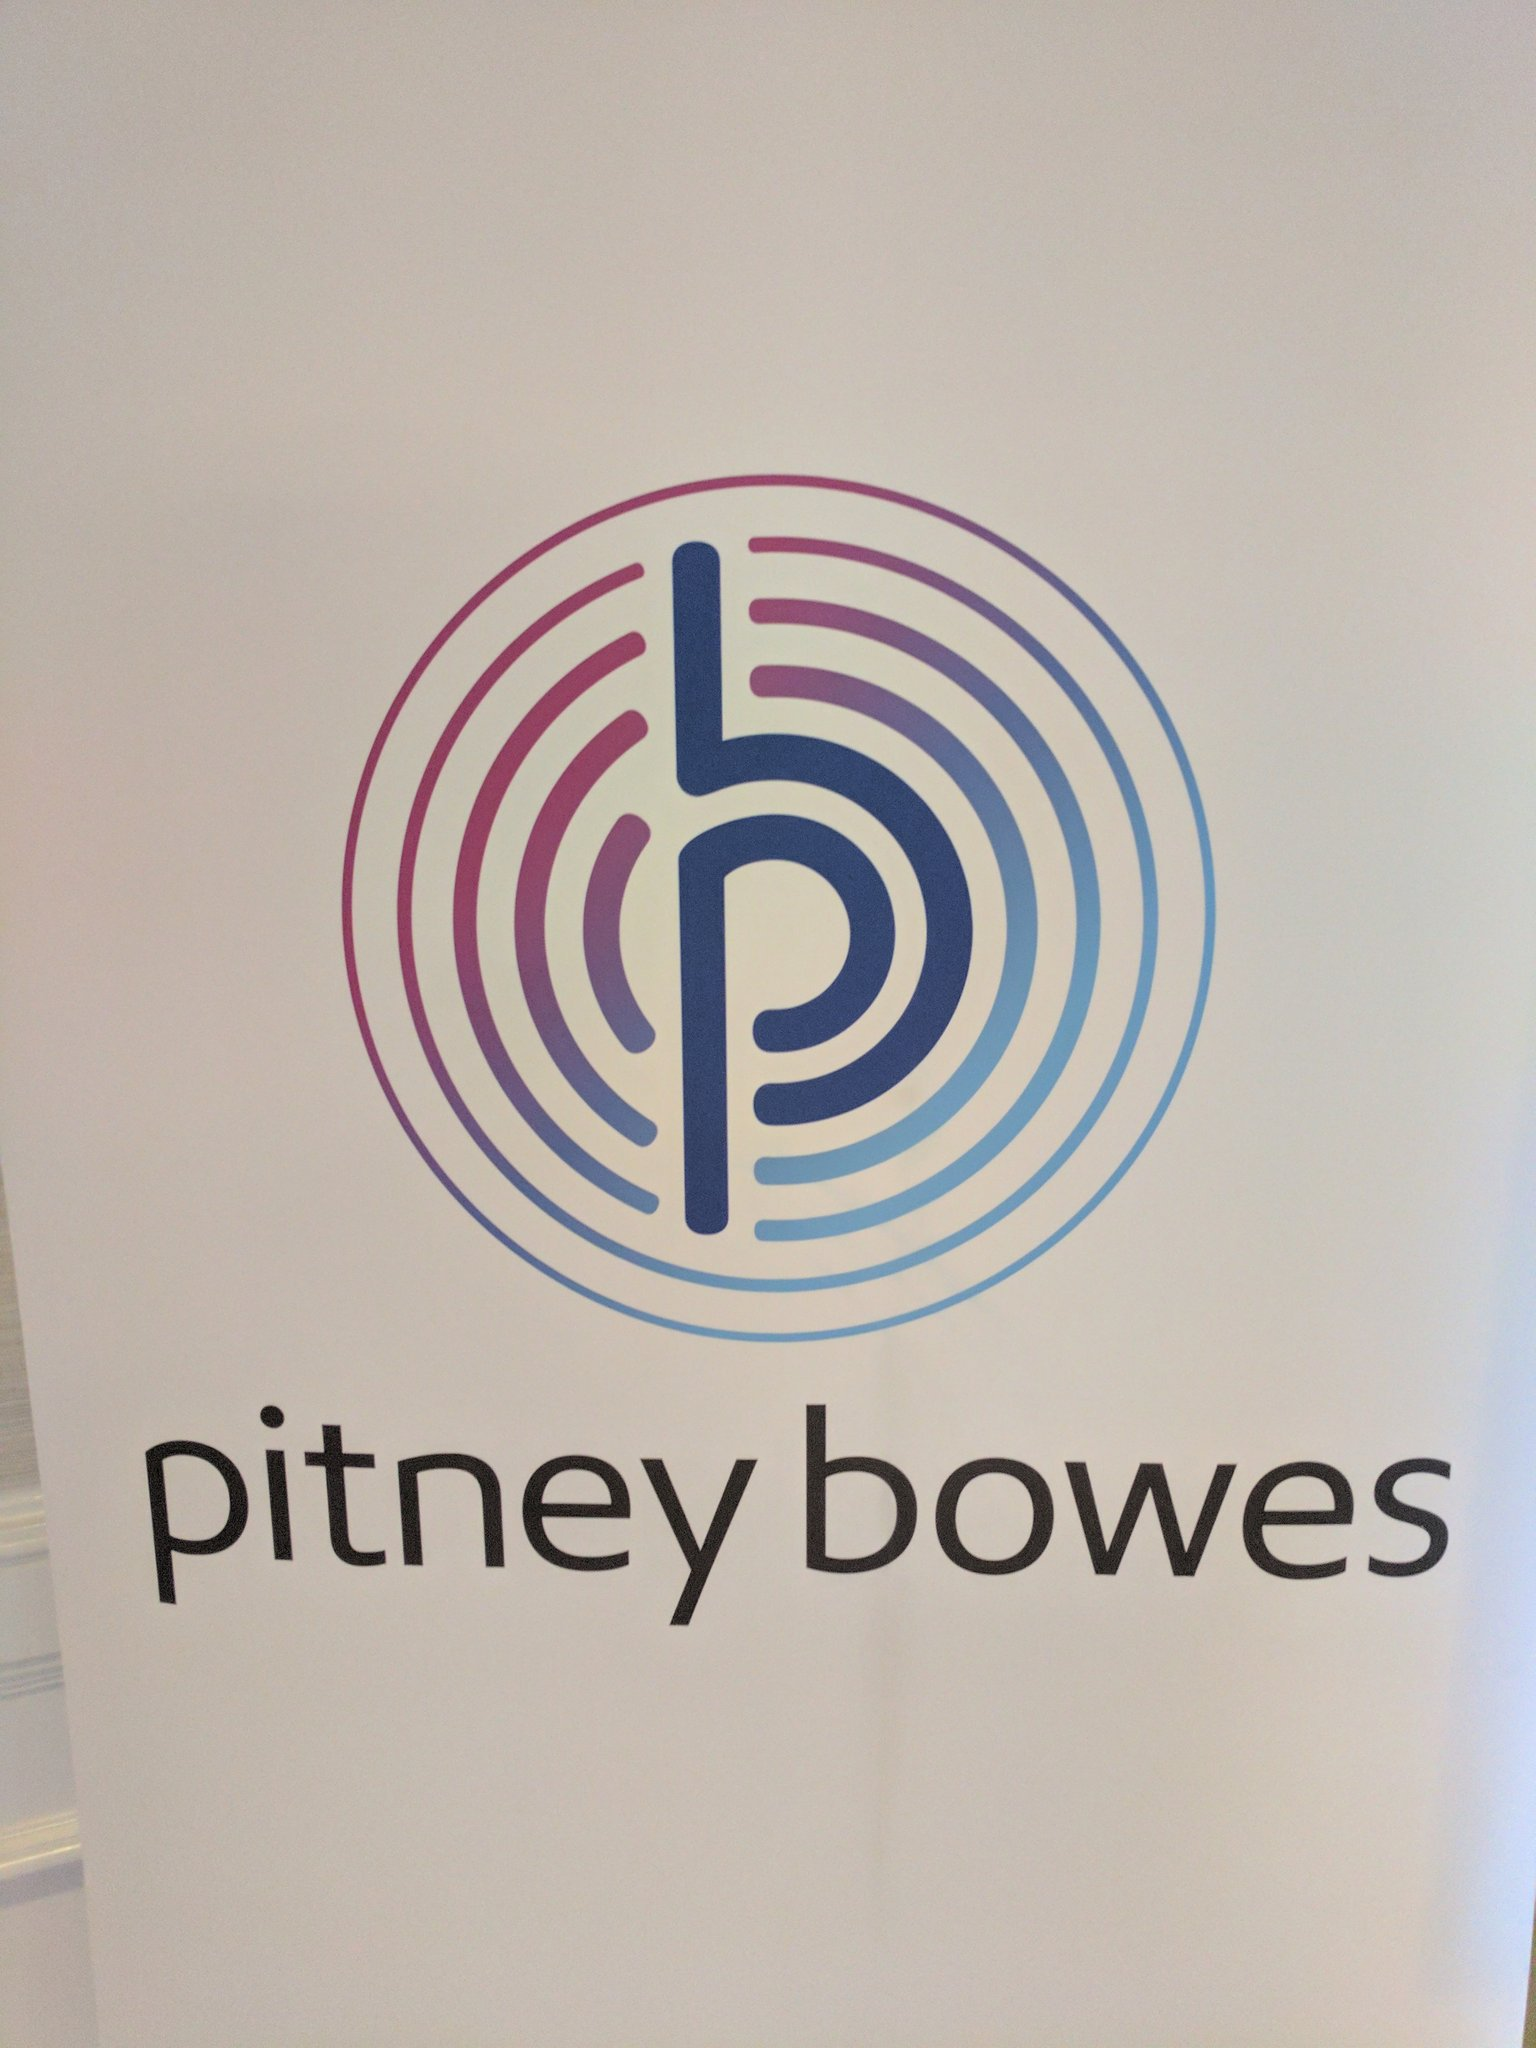 And it is [TweetStorm] = {On} for @PitneyBowes #PBTechAnalysts https://t.co/mJBmDee9eB